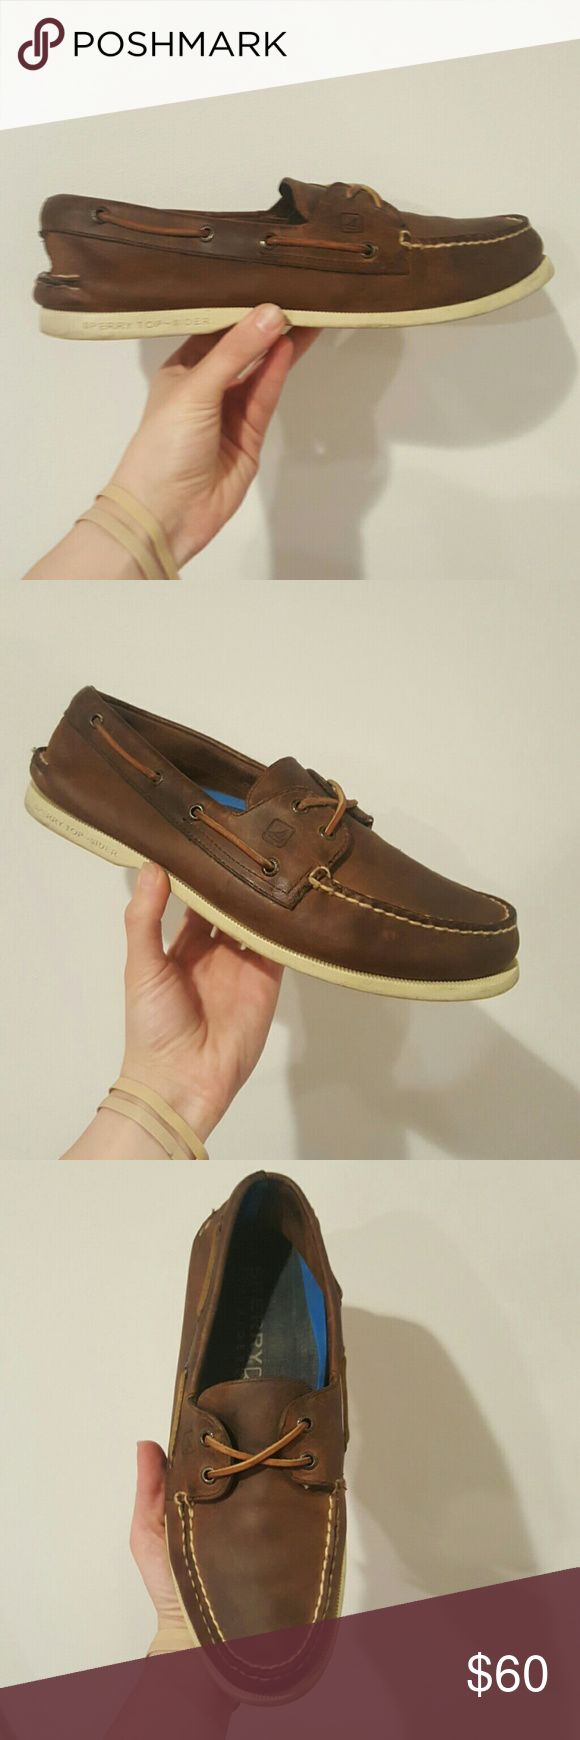 SPERRY MENS SHOES 10.5 DARK BROWN SPERRY TOPSIDER MENS BOAT SHOE BROWN LEATHER WHITE SOLES 10.5 EUC Sperry Top-Sider Shoes Boat Shoes